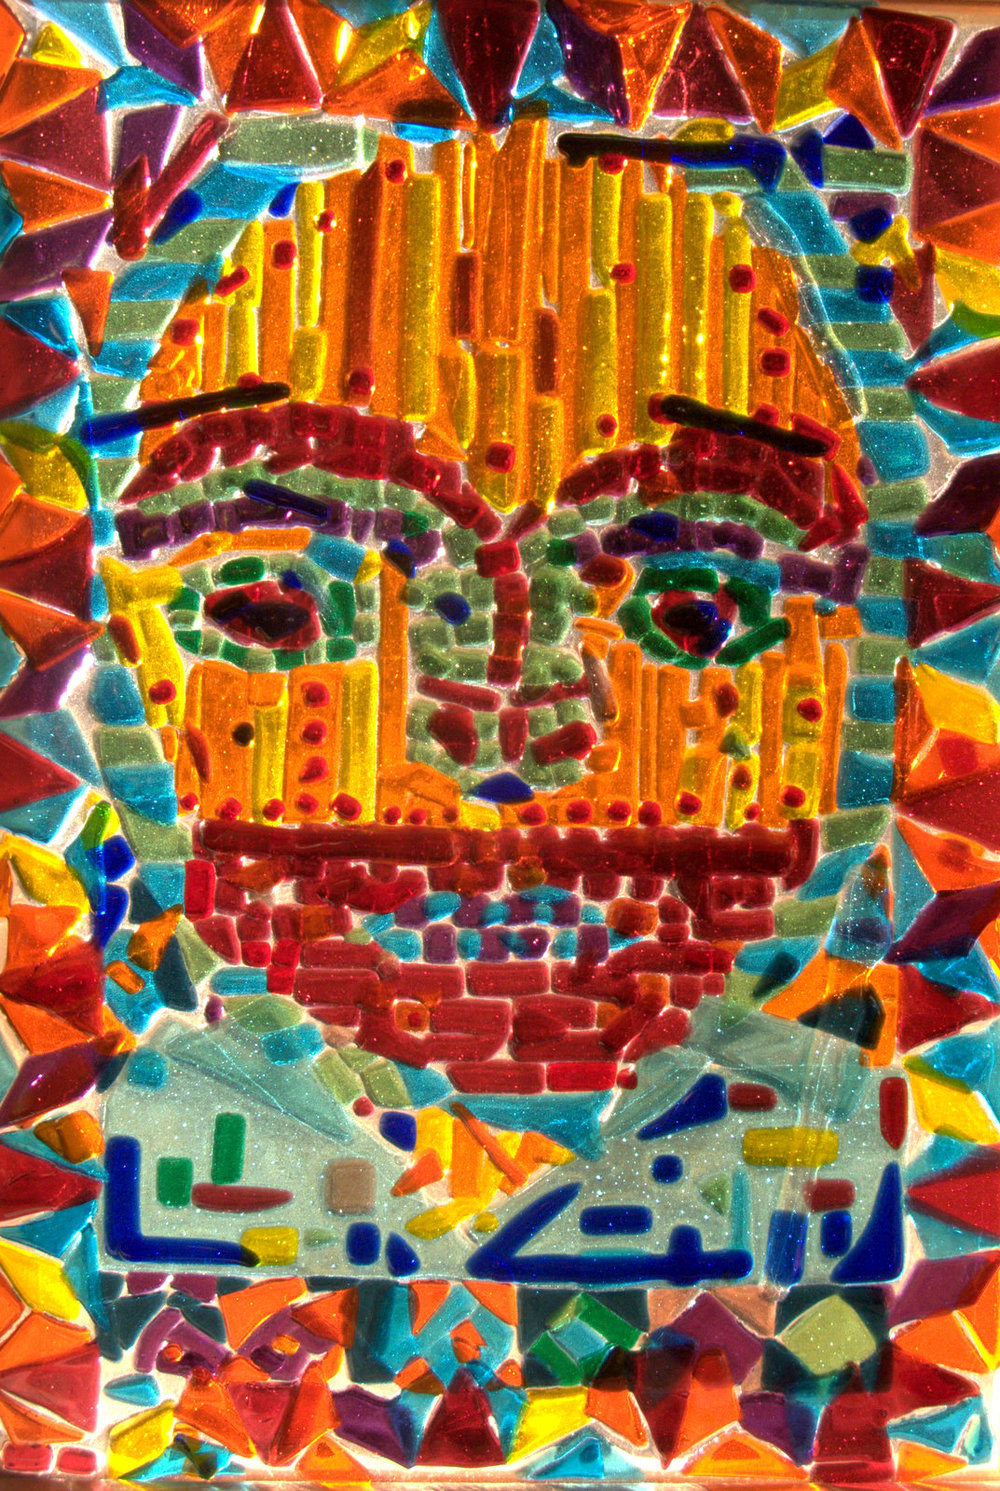 Inspired by an African mask.   I had seen a photo of an African mask which I liked and thought I'd do something like it.   I added my own patterns ont he edge.  2010  Fused glass.